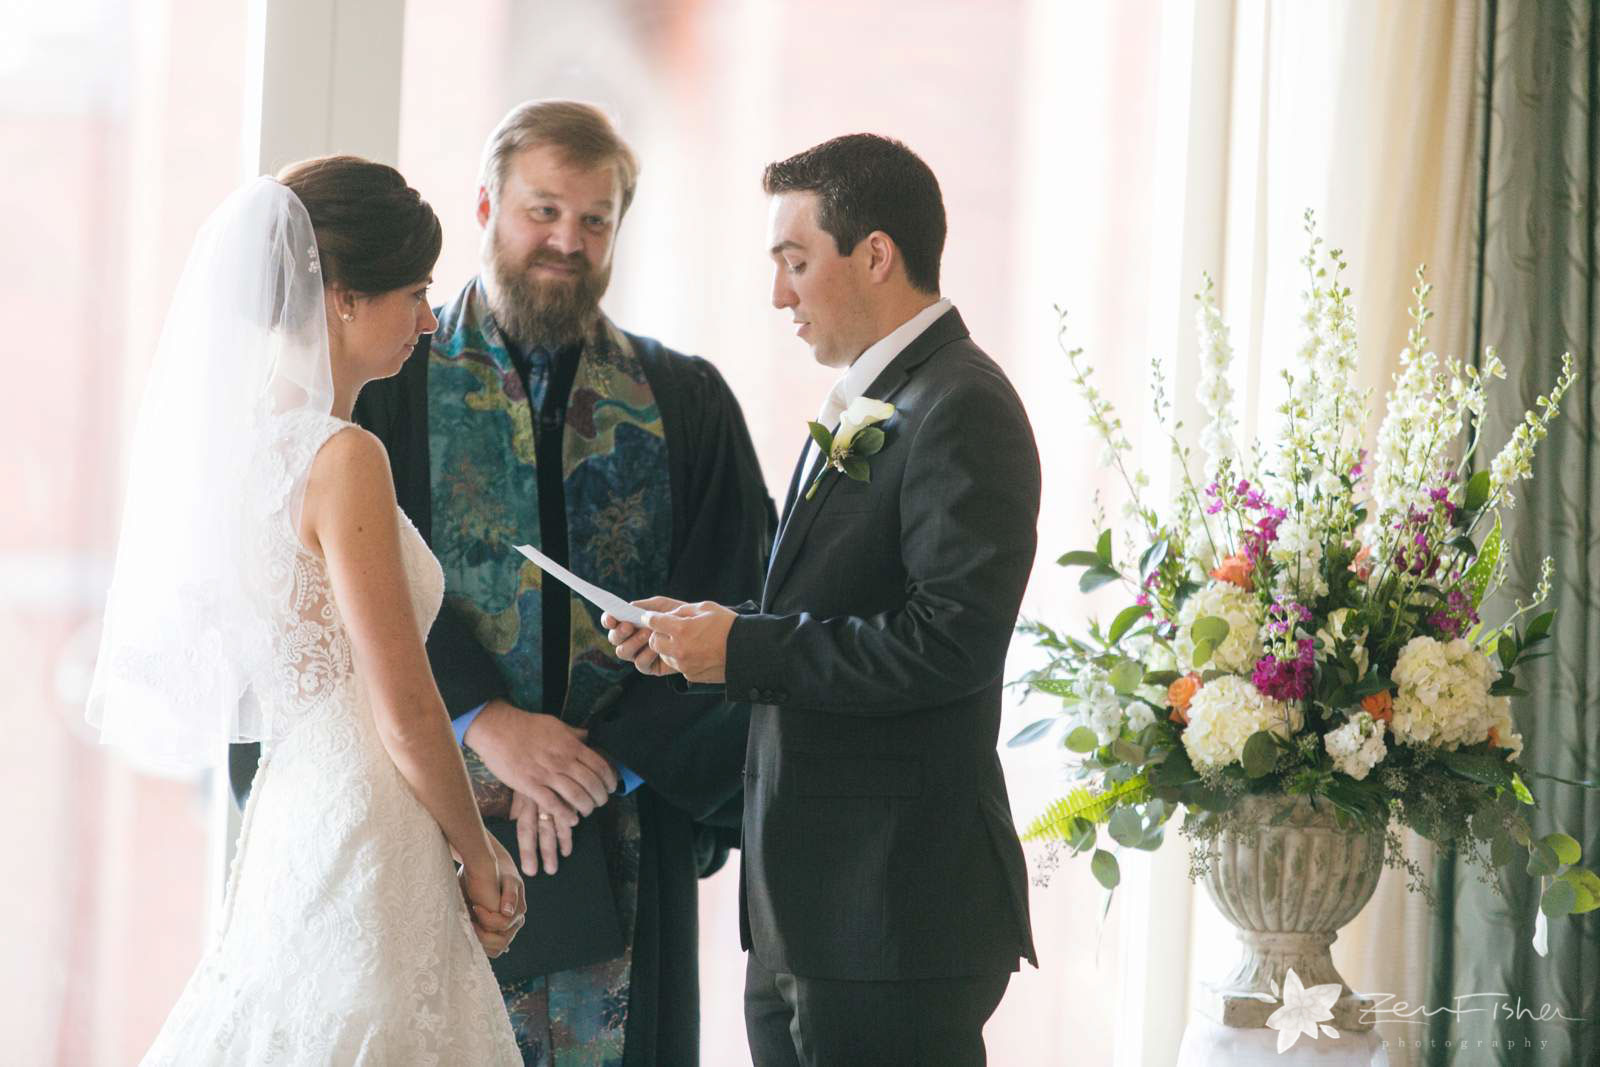 Groom saying his vows during wedding ceremony, beautiful natural light.